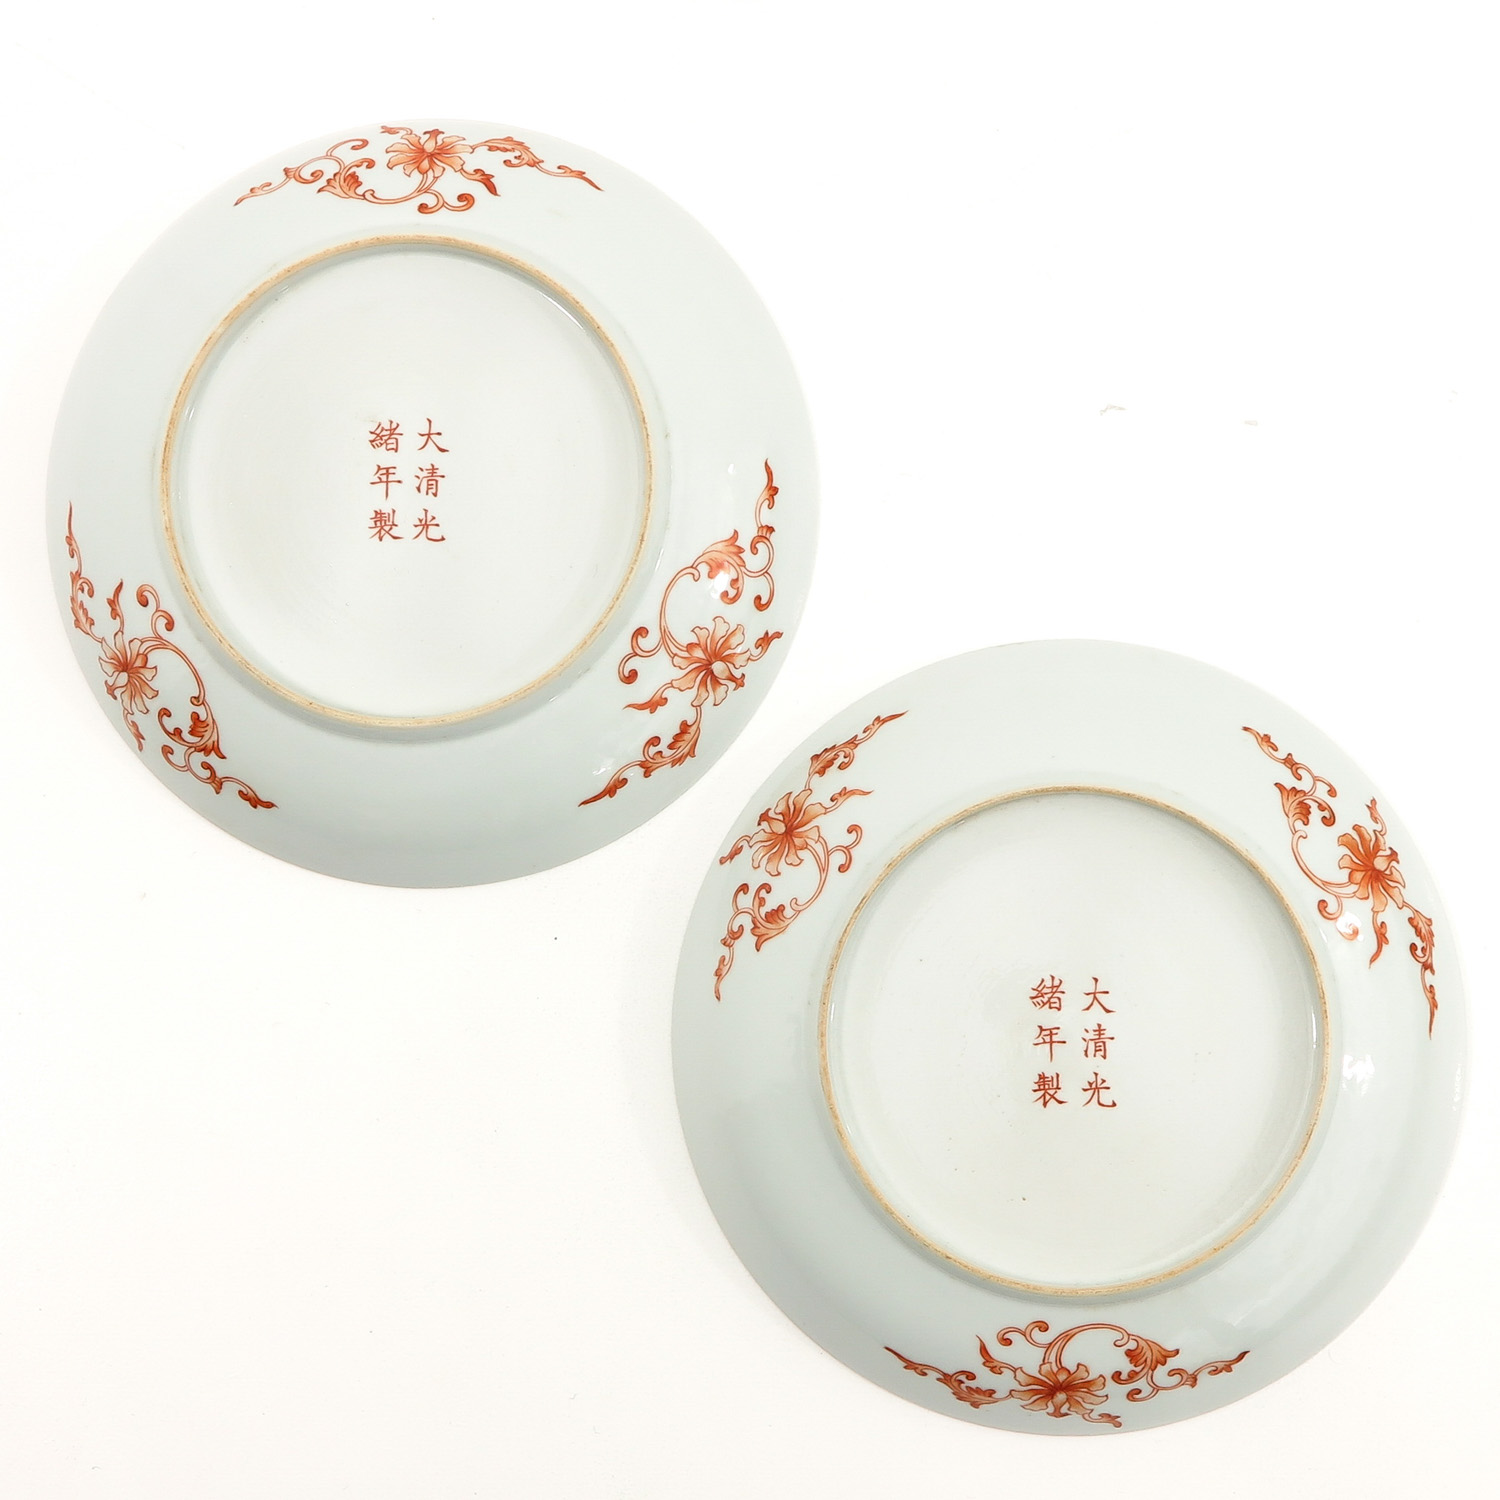 A Pair of Dragon Decor Plates - Image 2 of 10